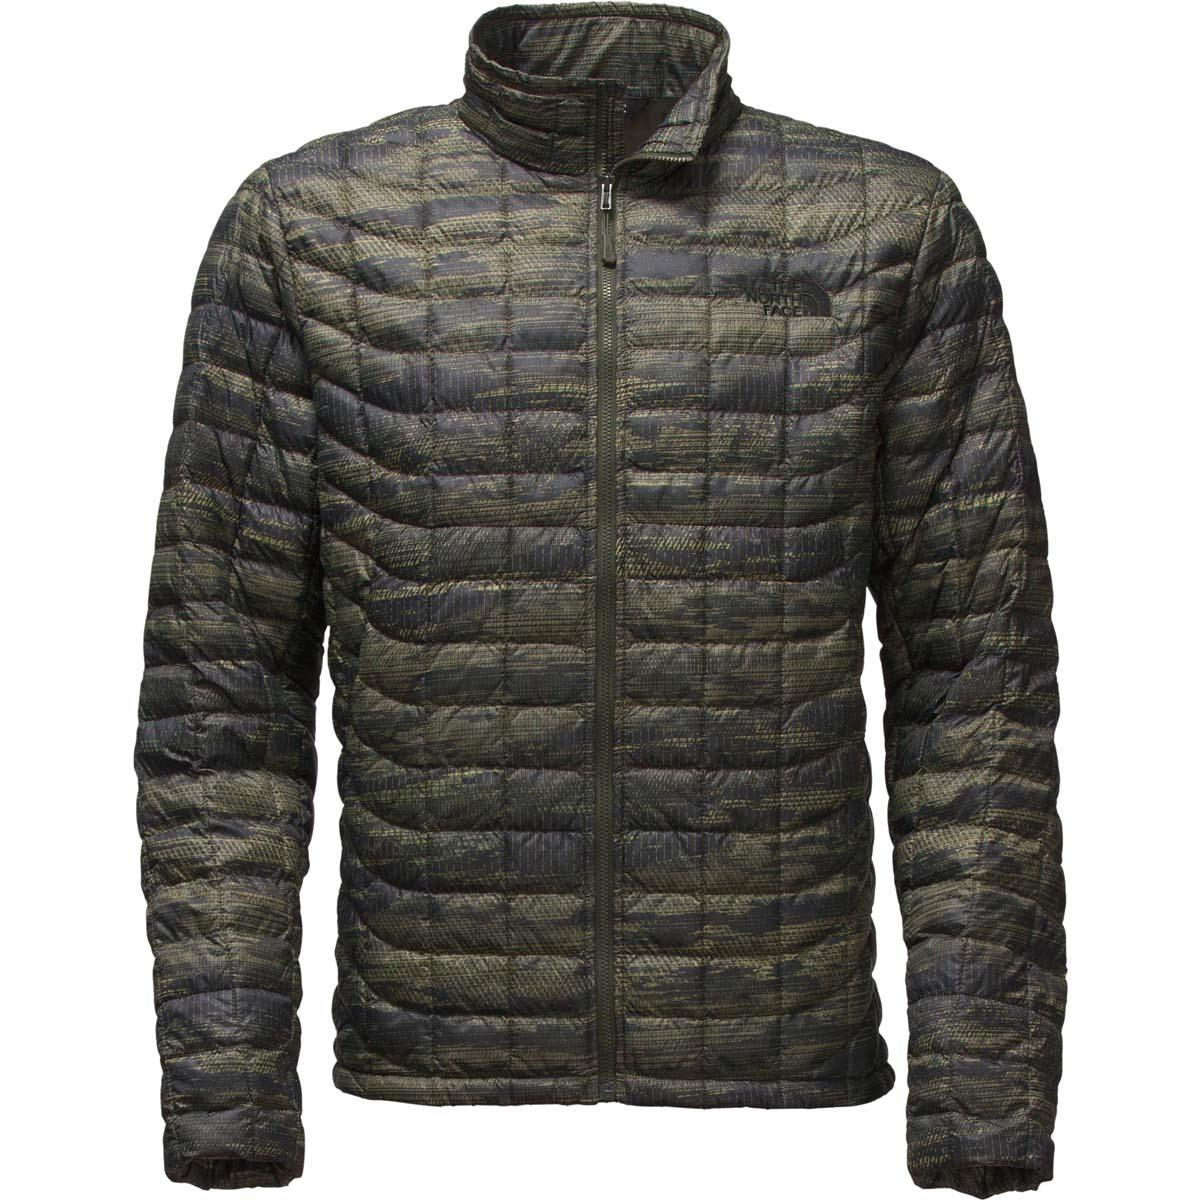 783c8a9b4e5c The North Face Thermoball Full Zip Jacket Mens. Loading zoom